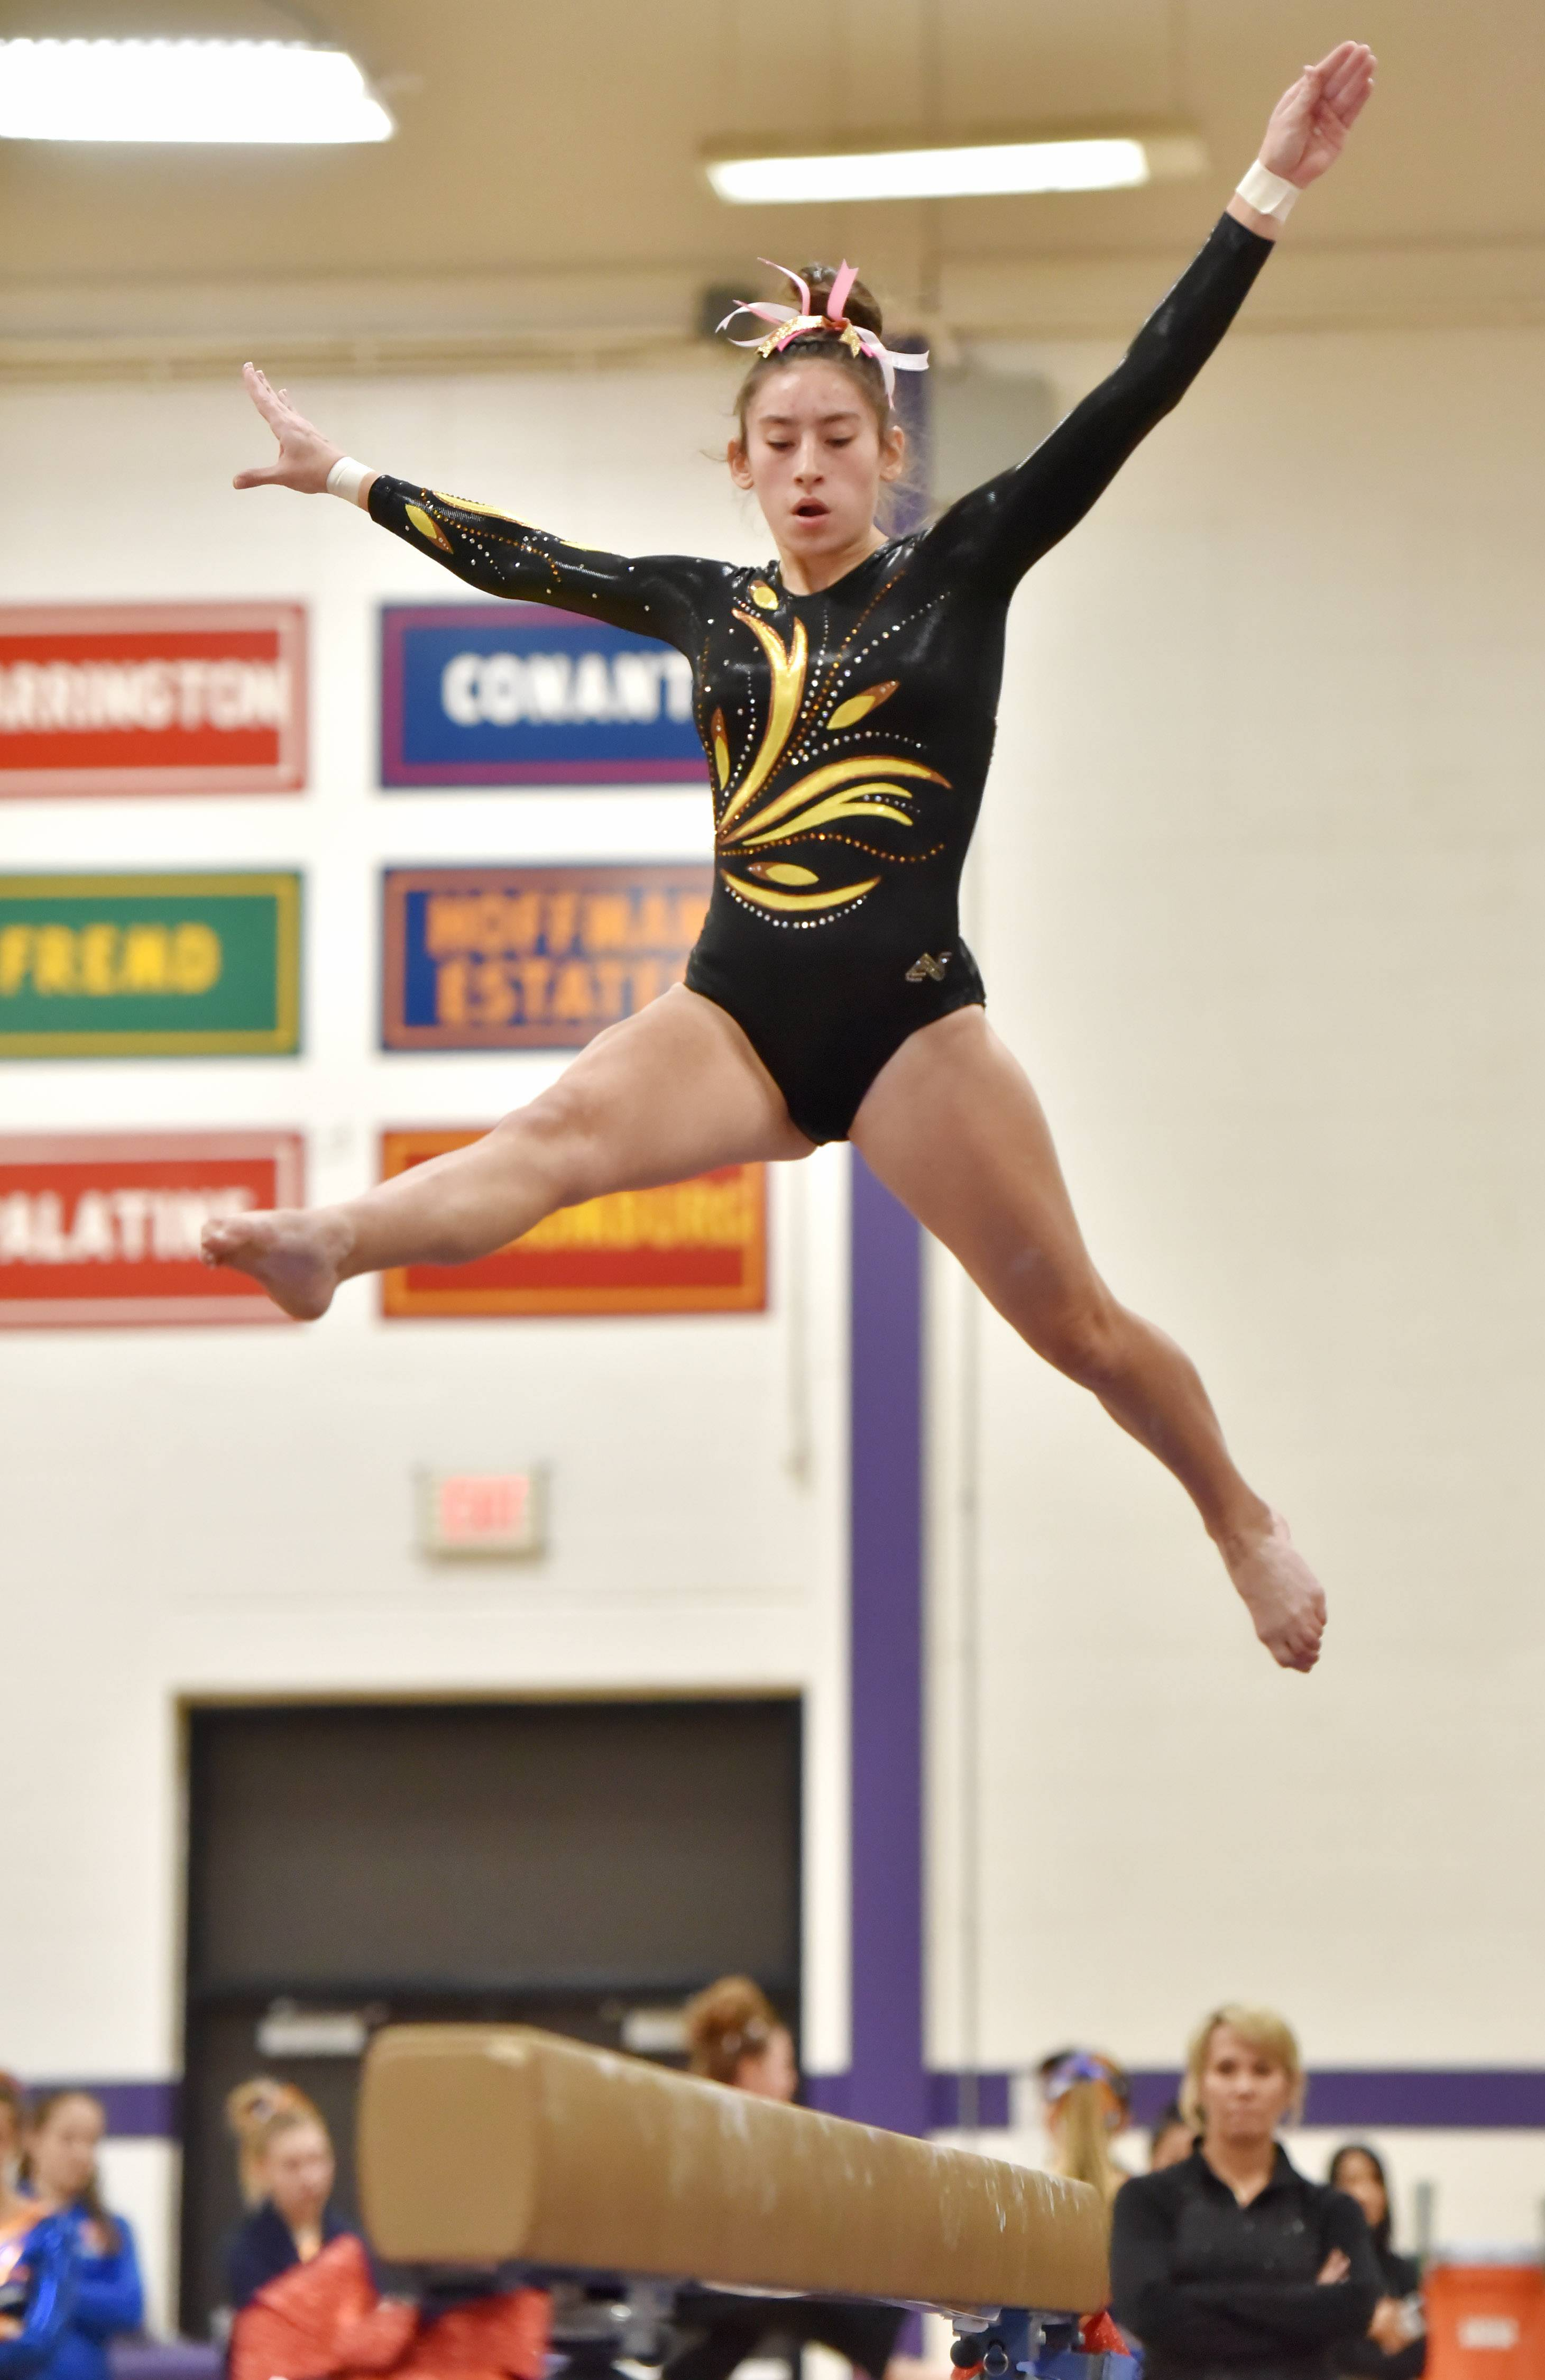 Carmel's Aideen Cazzini performs on the Balance Beam Saturday at the Rolling Meadows High School girls gymnastics Al Galatte Holiday Invitational.